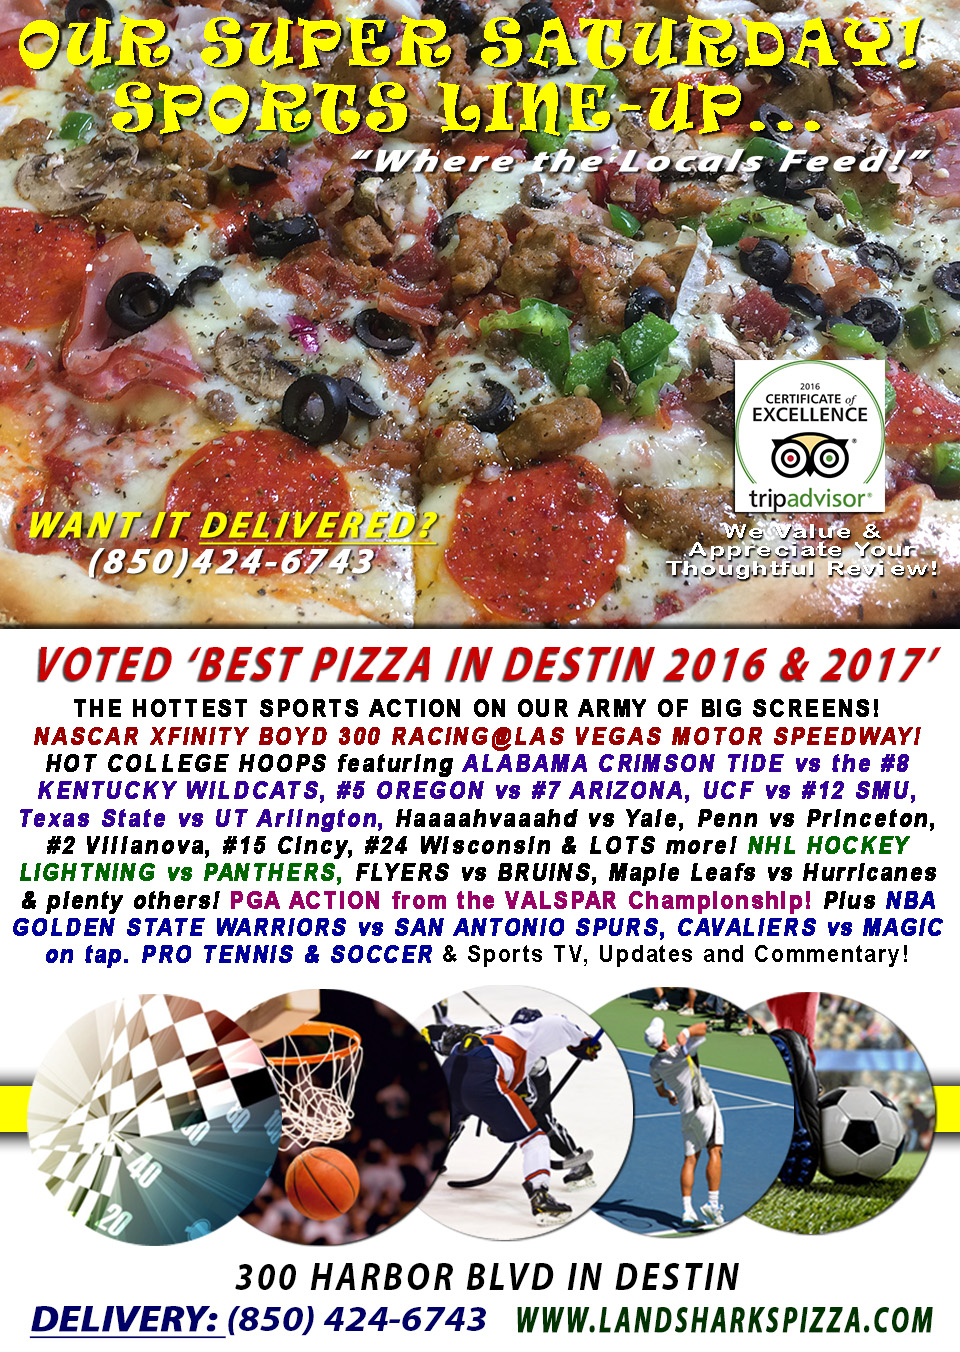 NASCAR XFINITY, COLLEGE HOOPS, NHL, NBA & More SUPER SATURDAY SPORTS with The Best Pizza in Destin!